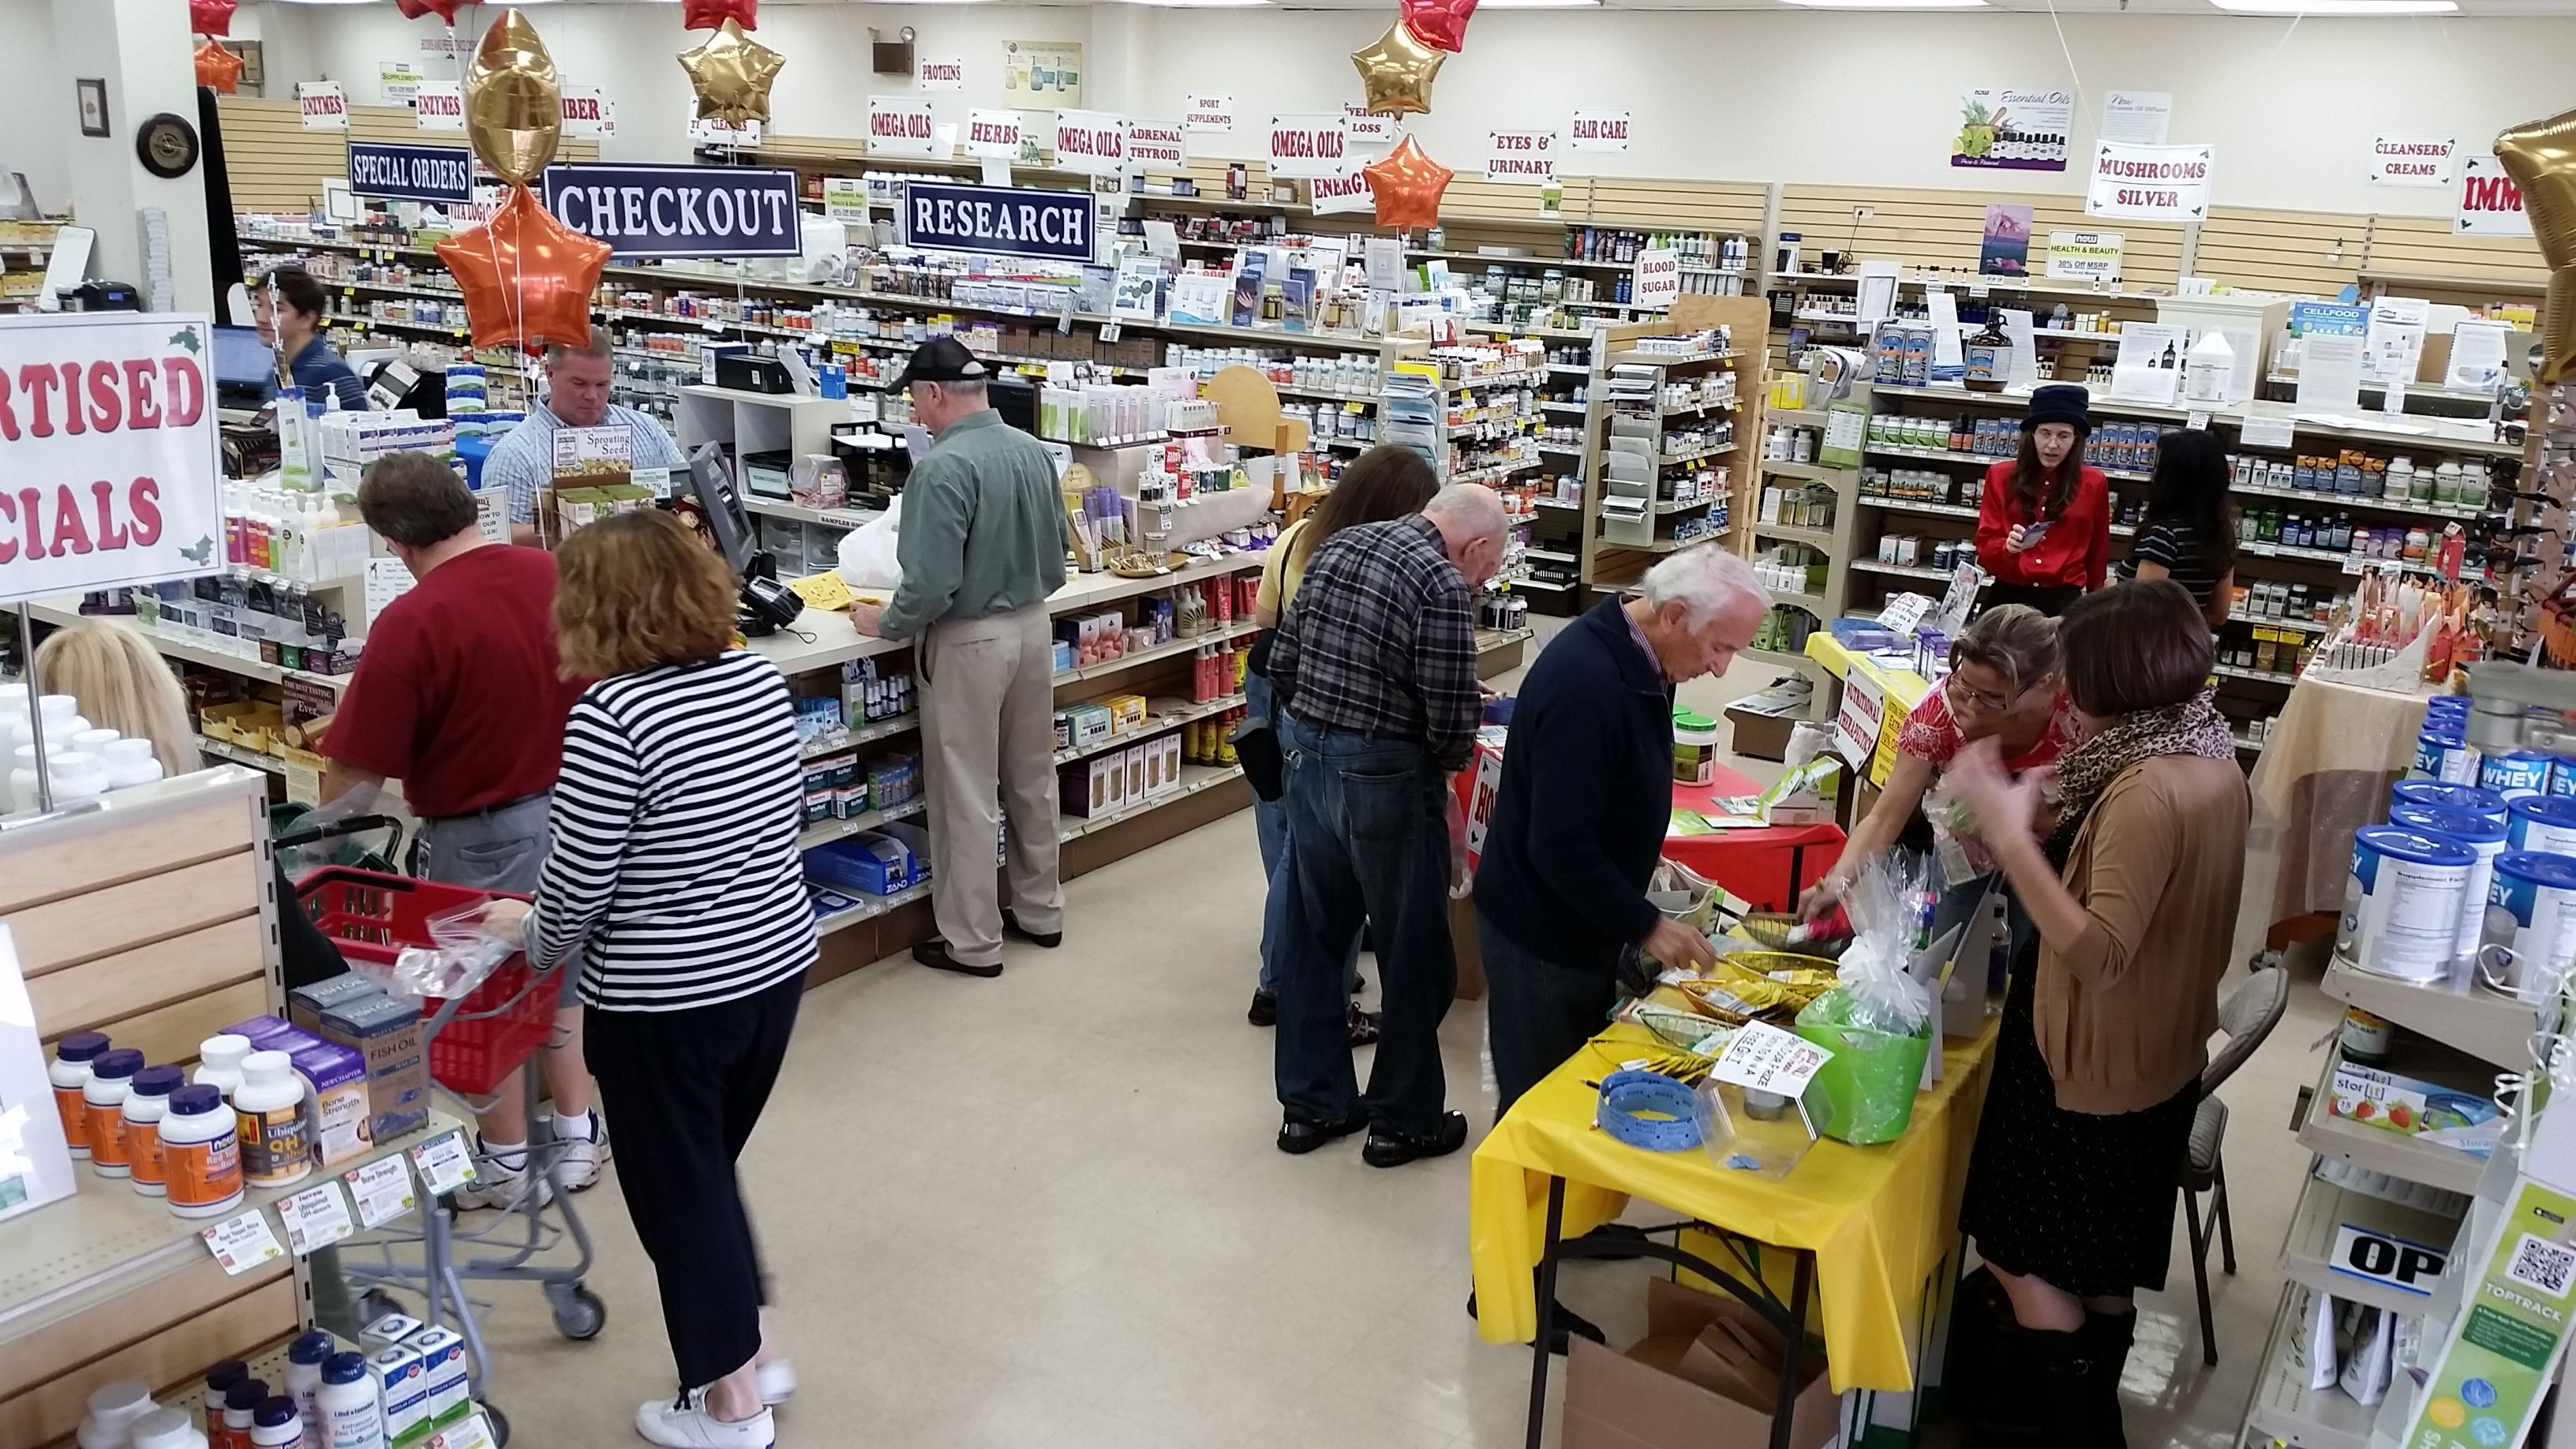 Pin by Holly Hill Health Foods on Events   Shopping center ...